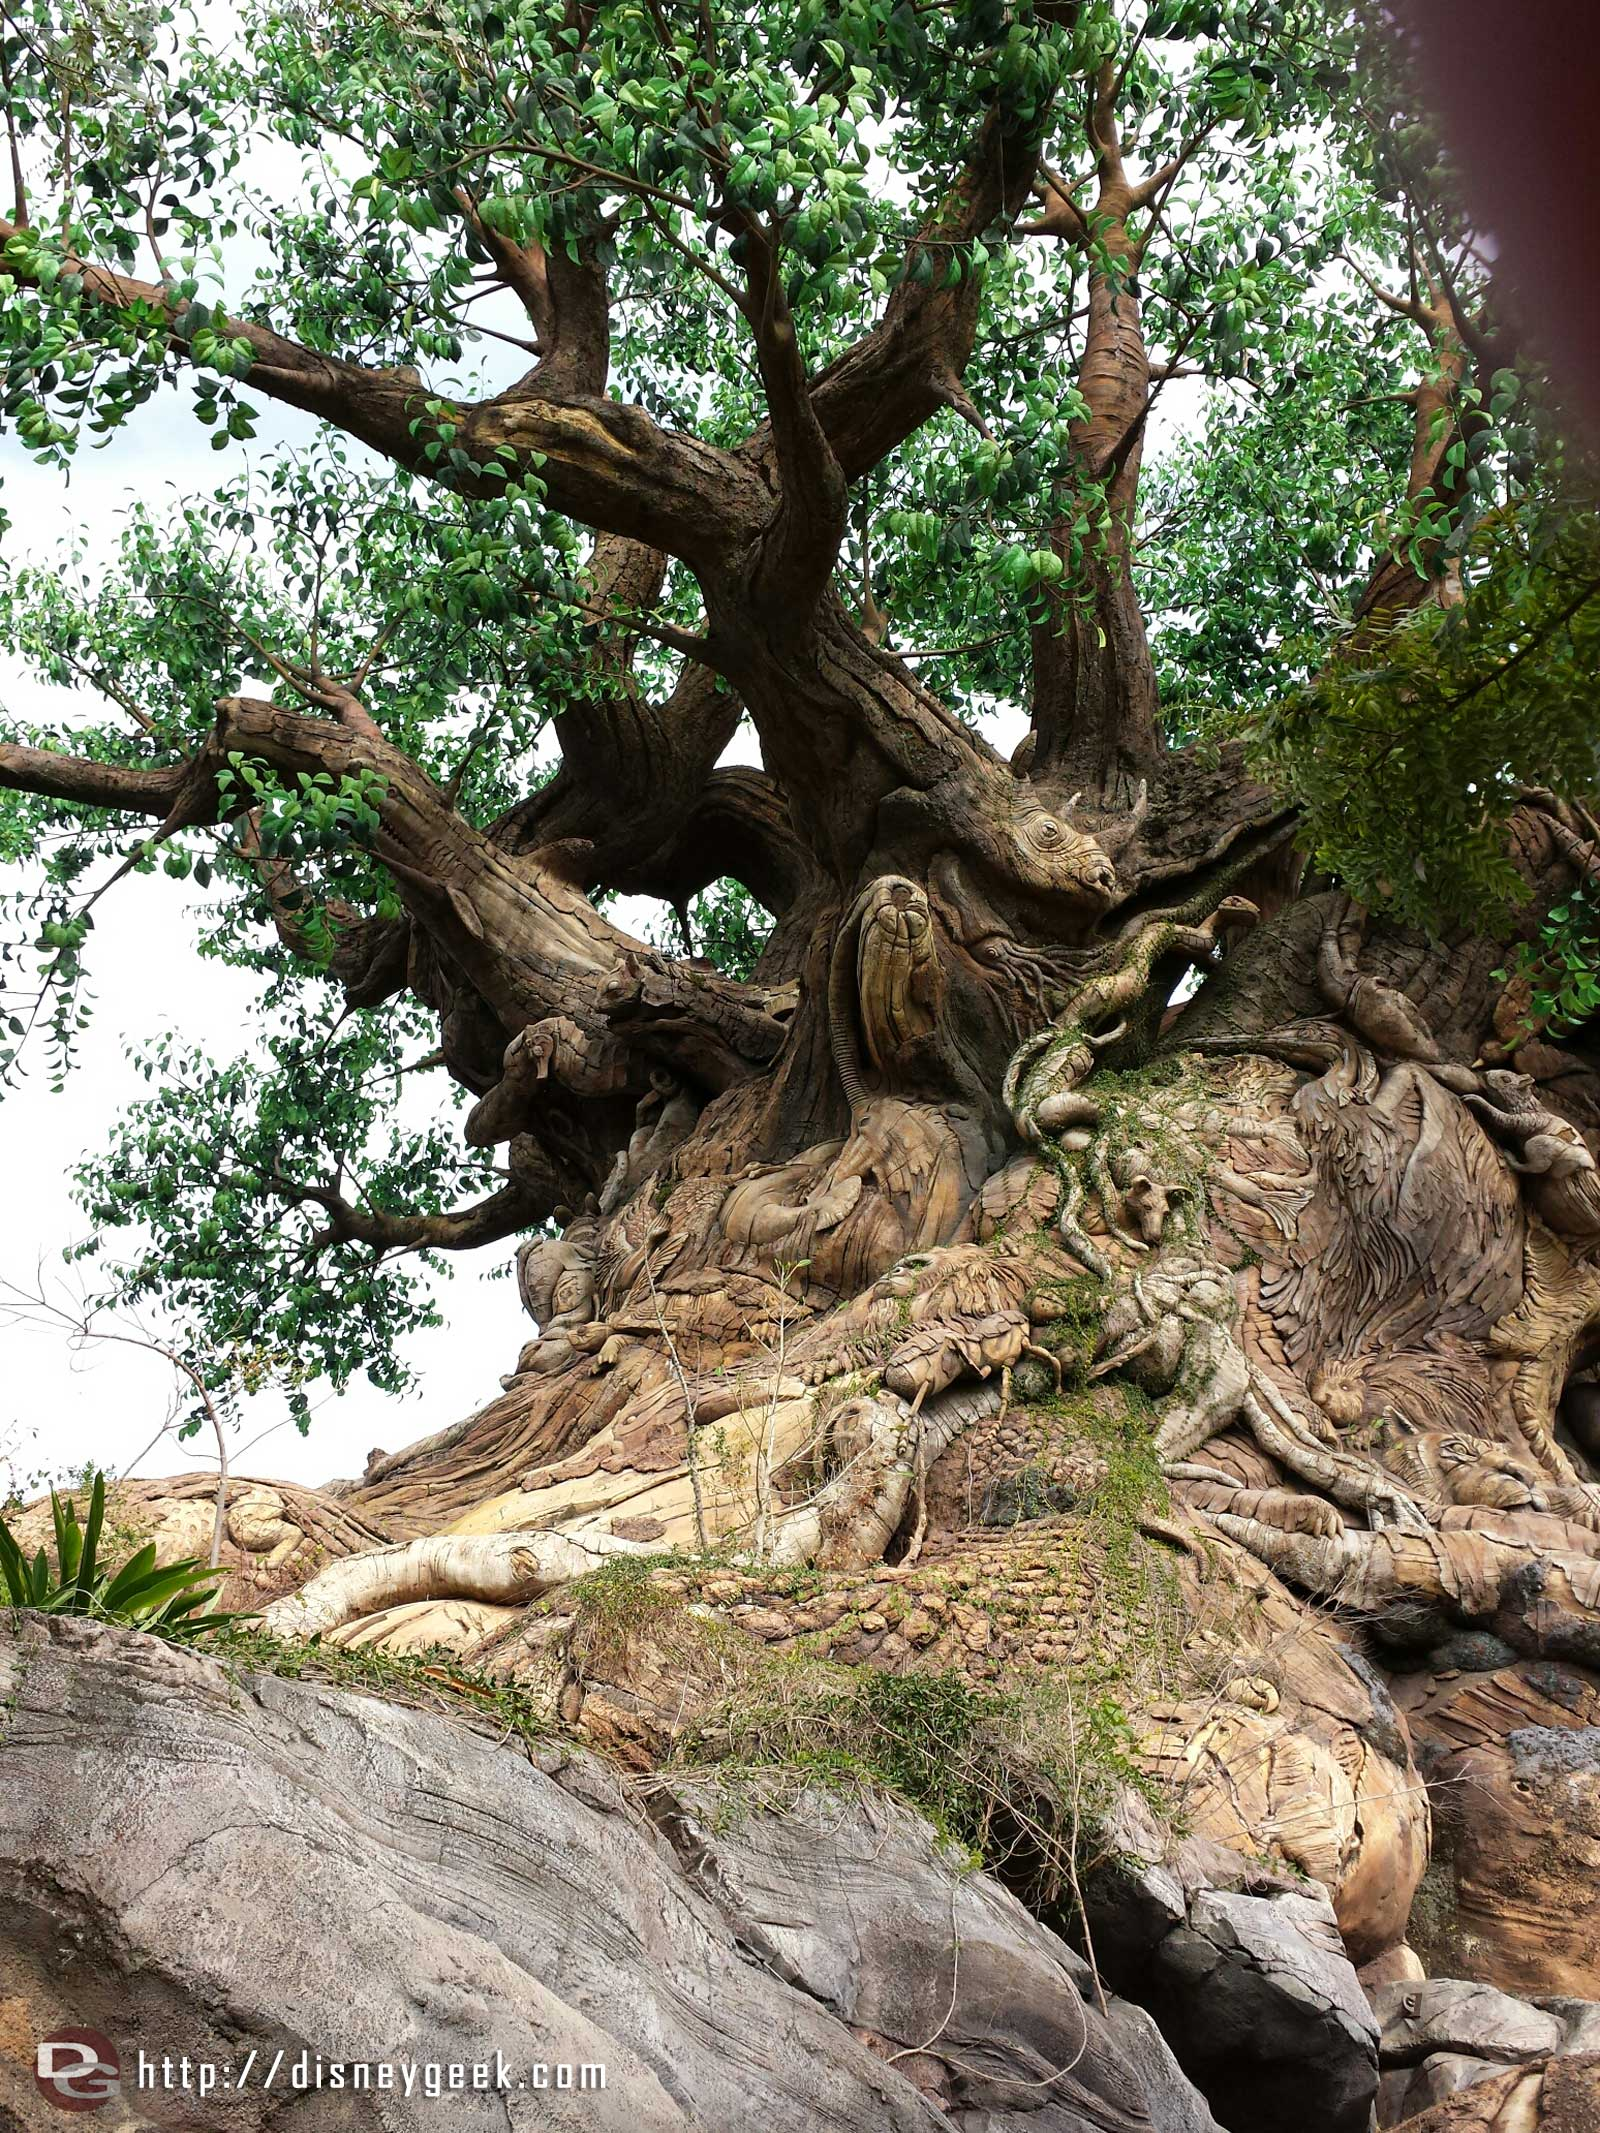 The Tree of Life – Disney's Animal Kingdom